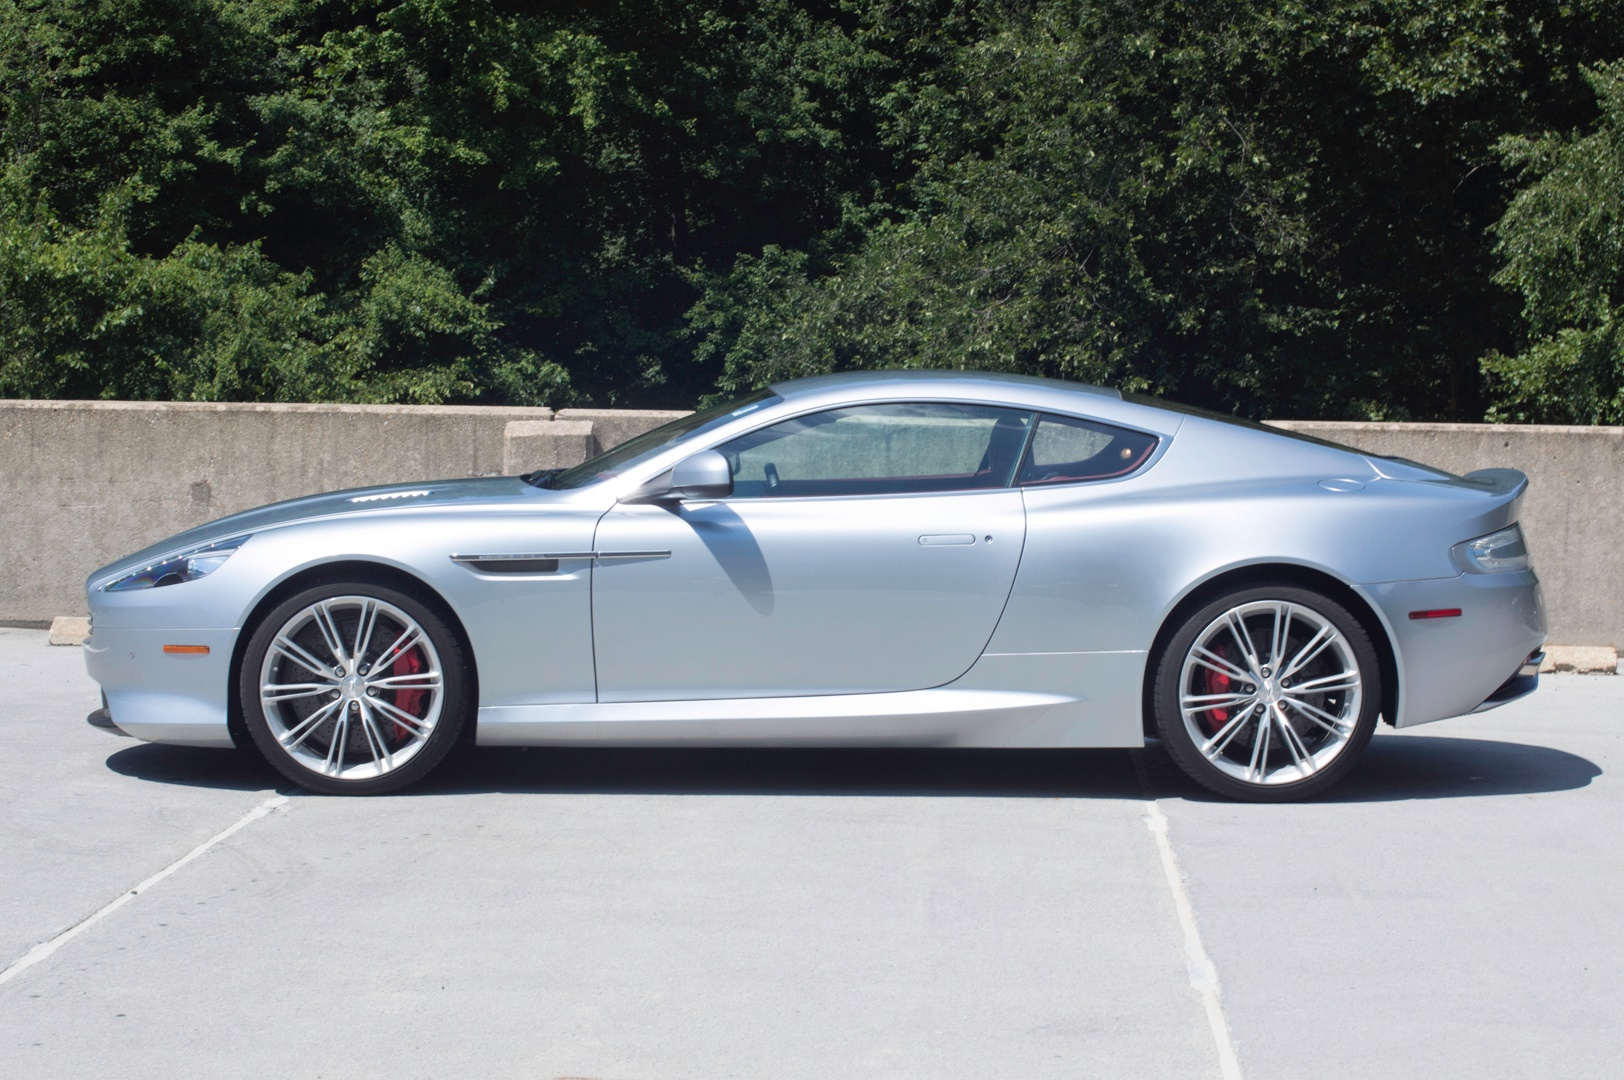 2013 aston martin db9 stock 3na14750 for sale near. Cars Review. Best American Auto & Cars Review